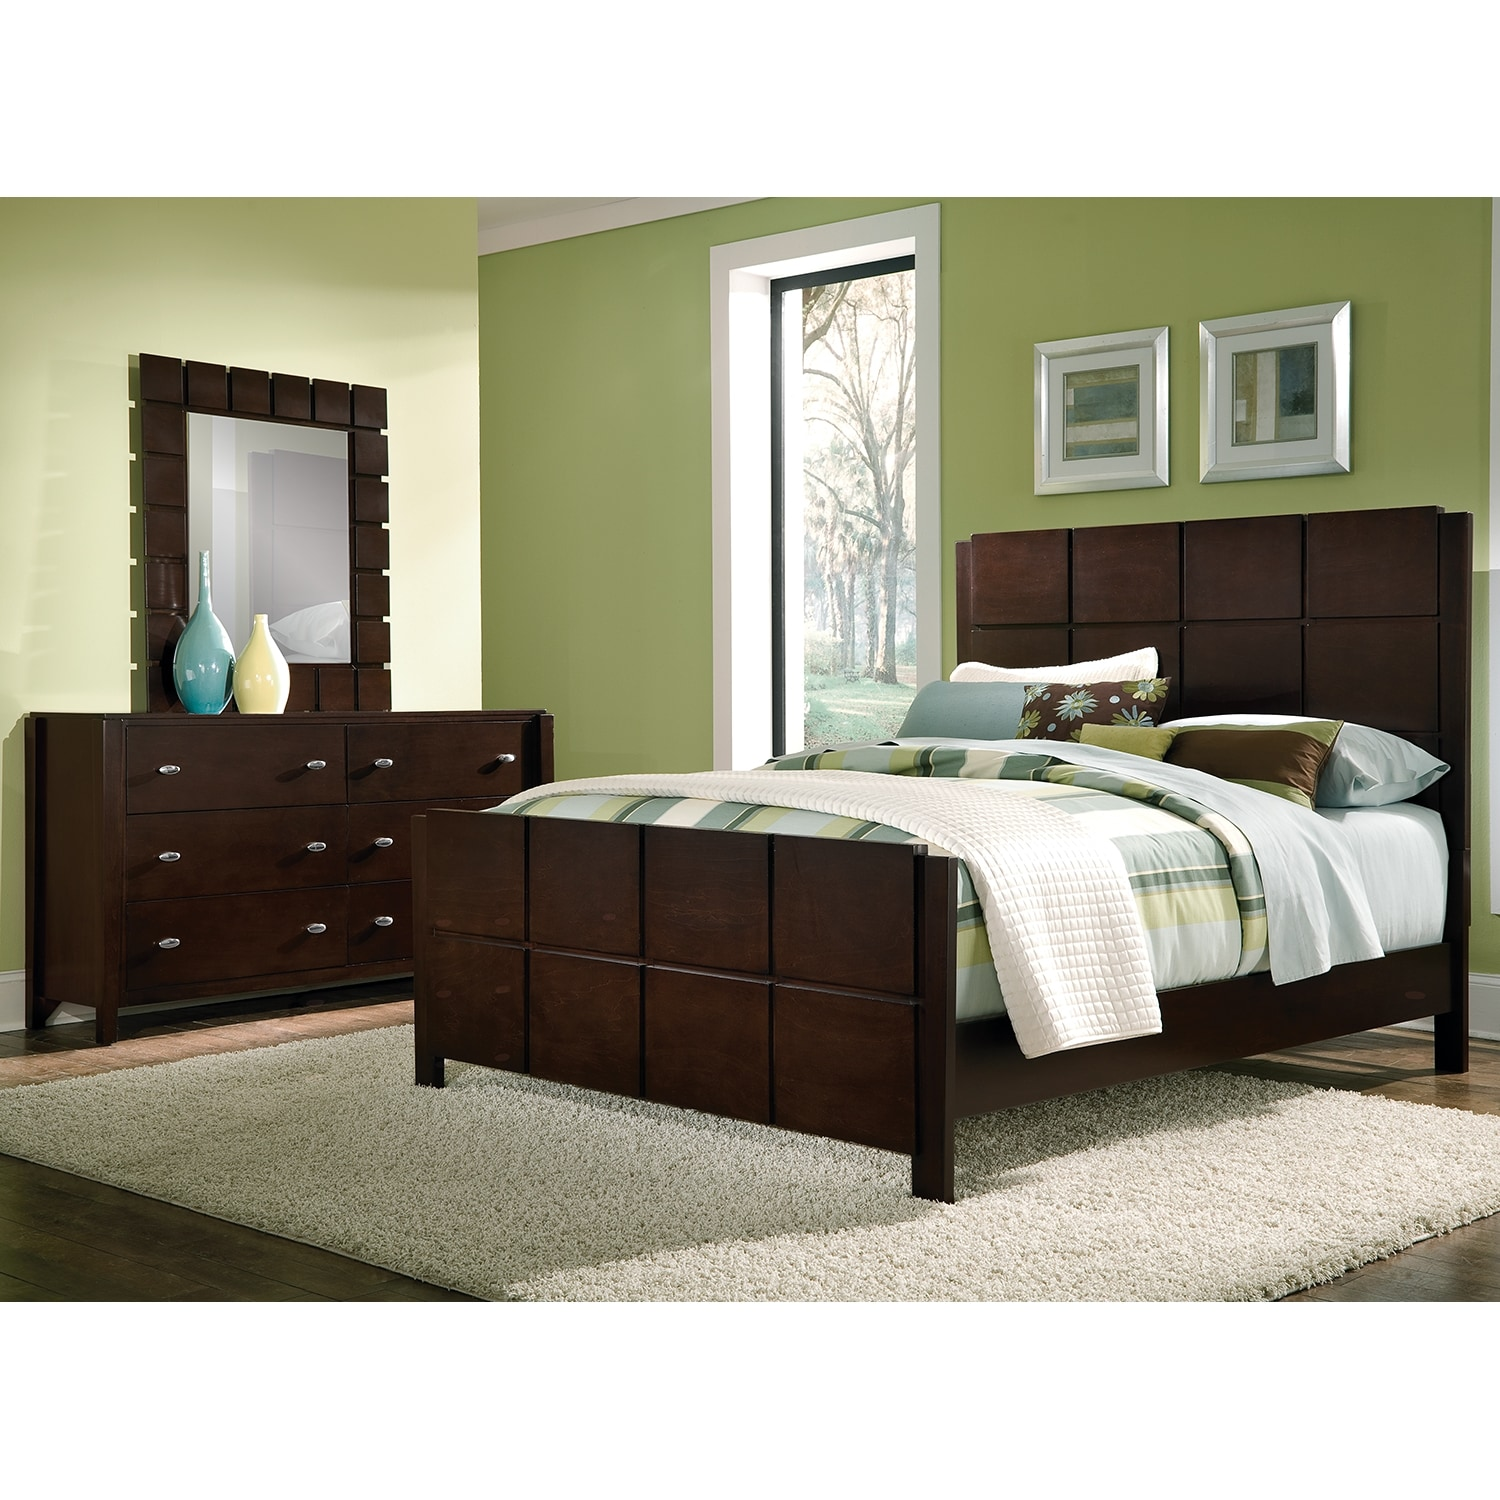 Mosaic 5 piece king bedroom set dark brown american for Bedroom furniture